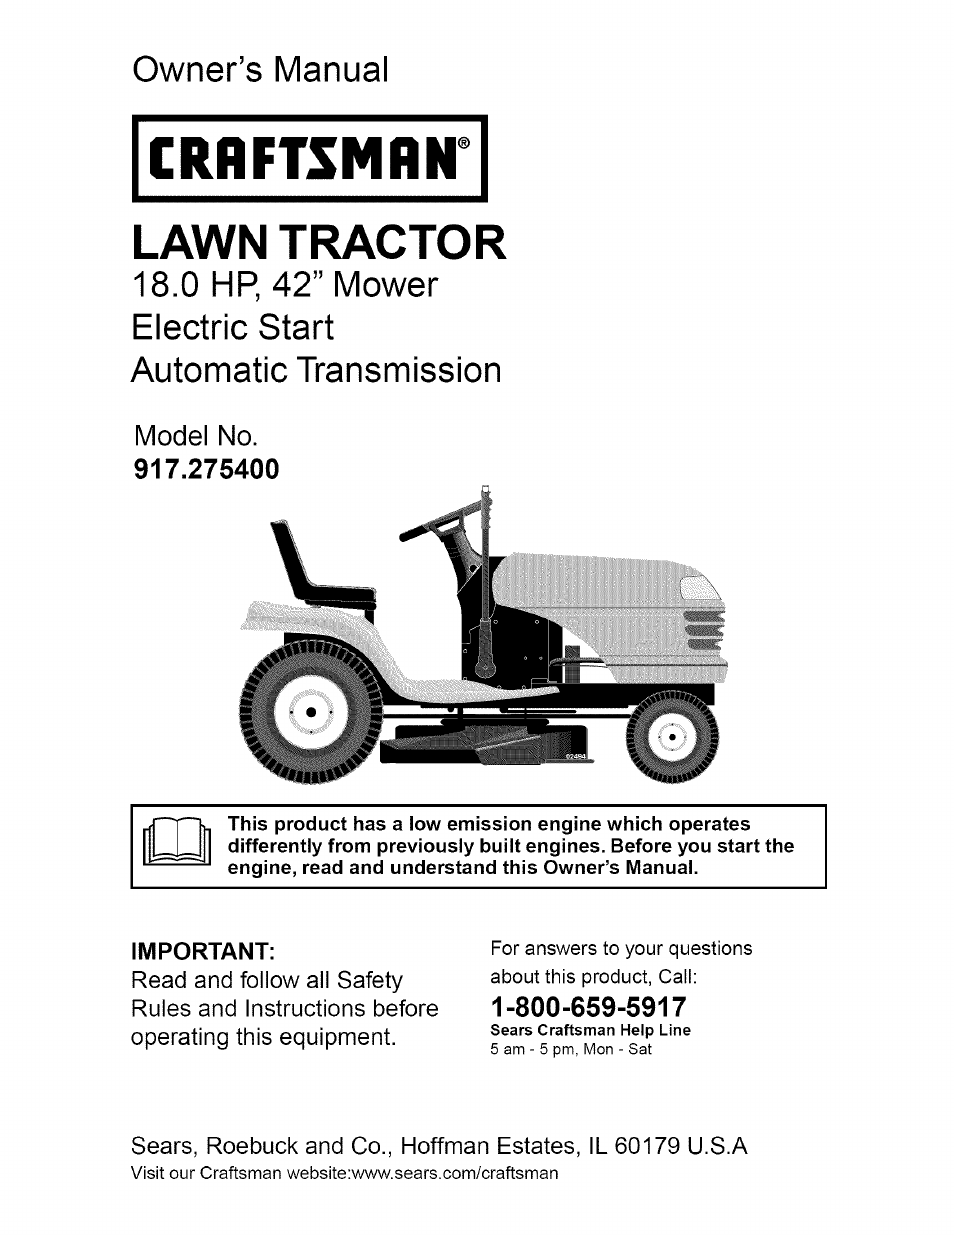 sears owners manual for lawn tractors browse manual guides u2022 rh trufflefries co Craftsman 42 Mower Owners Manual 917 259567 owners manual craftsman dys 4500 lawn tractor